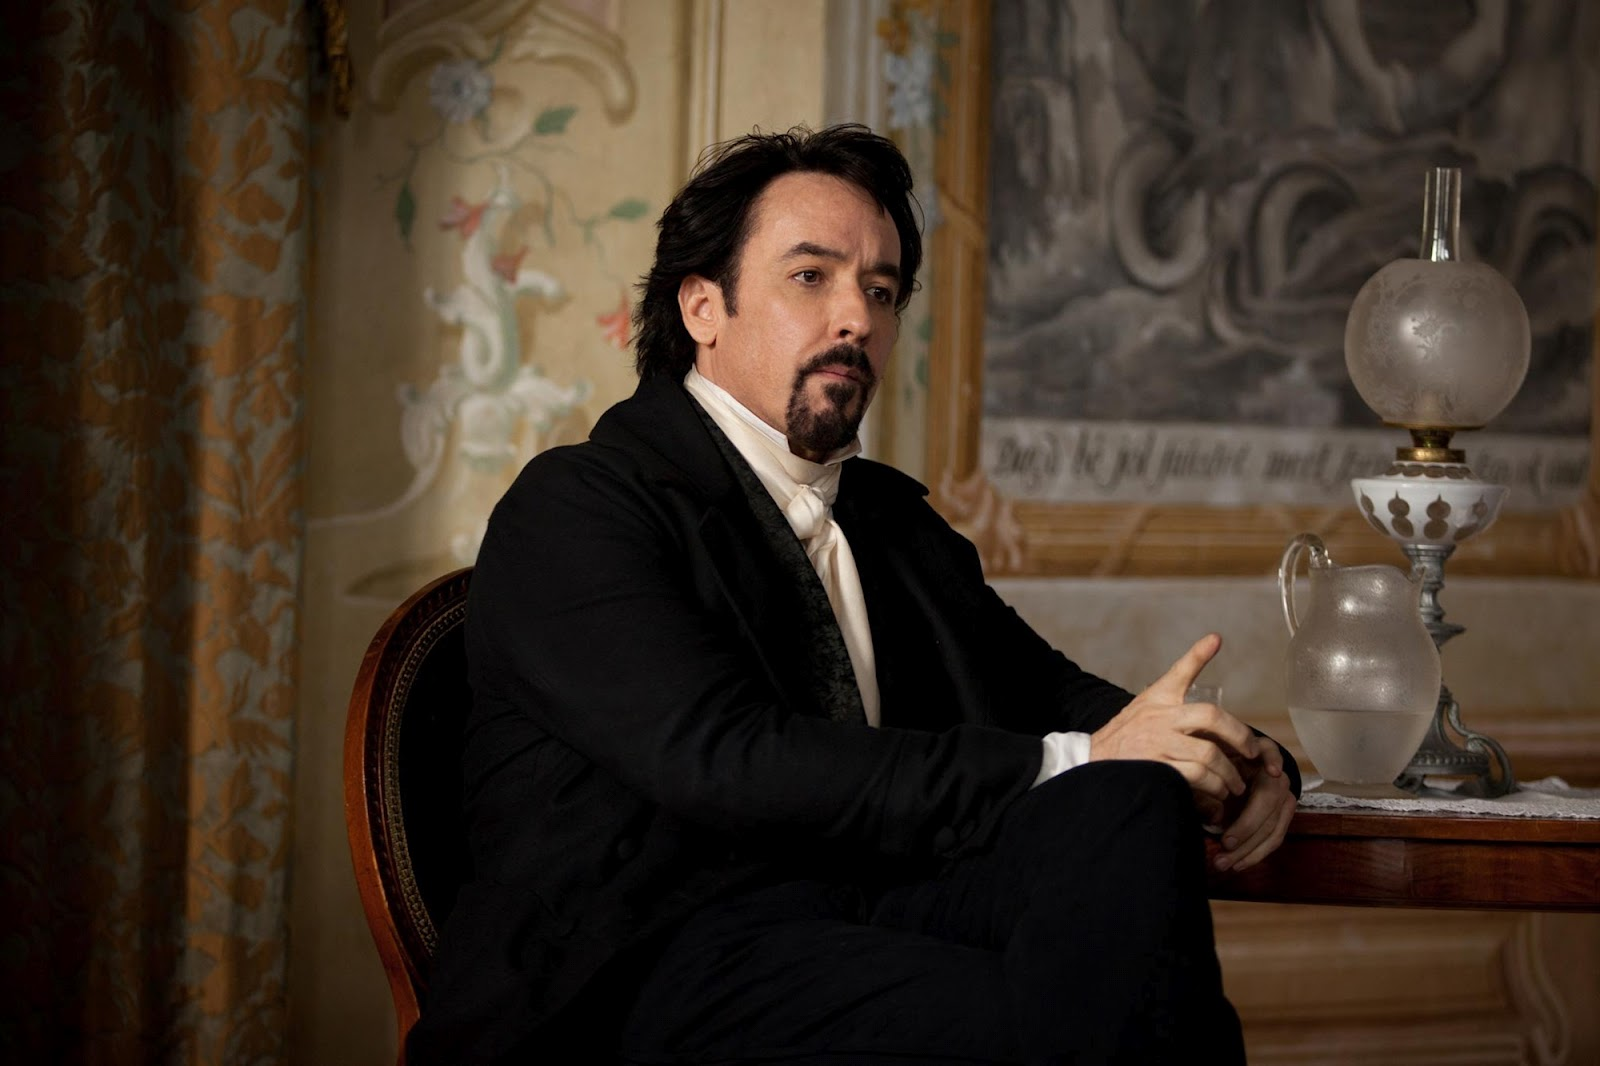 John Cusack as Edgar Allan Poe in The Raven (2012)